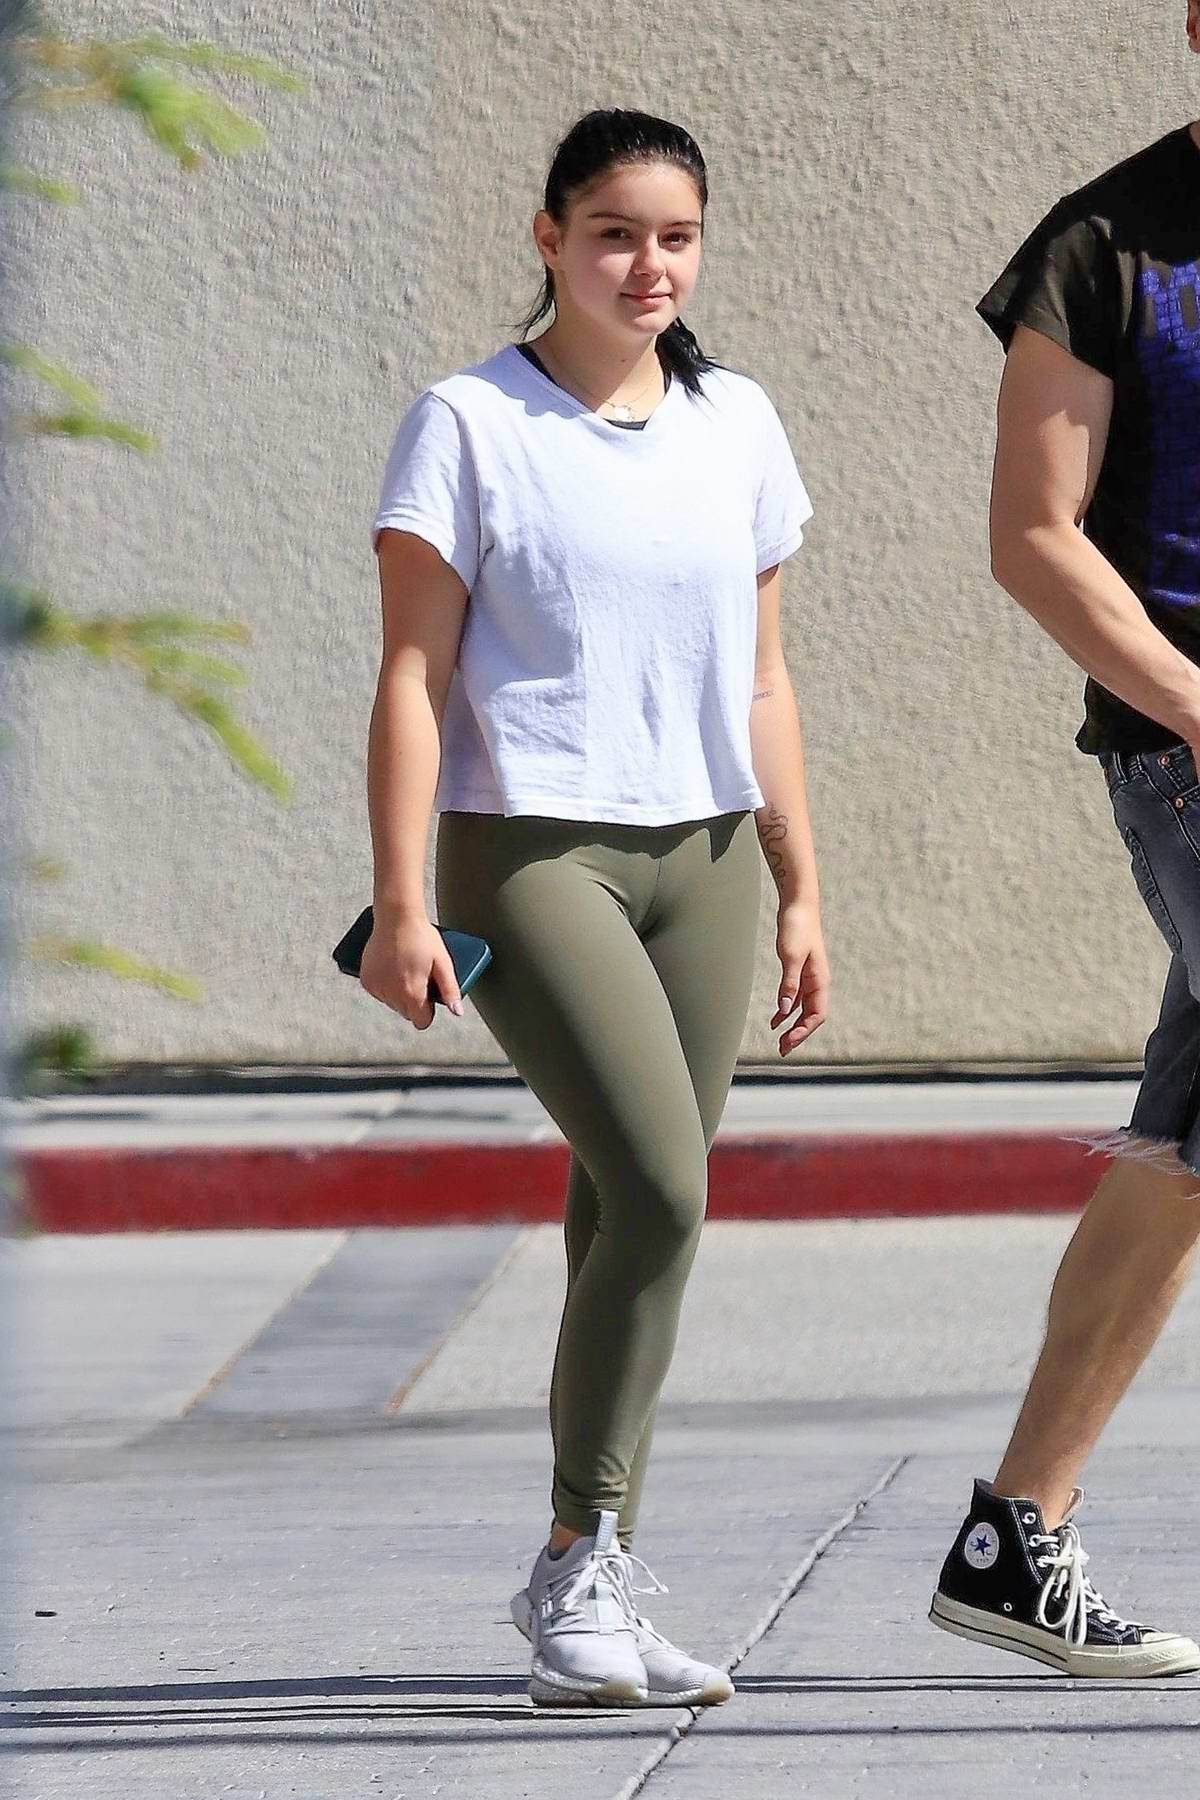 Ariel Winter spotted in a white tee, olive green leggings and Puma trainers as she leaves the gym in Los Angeles